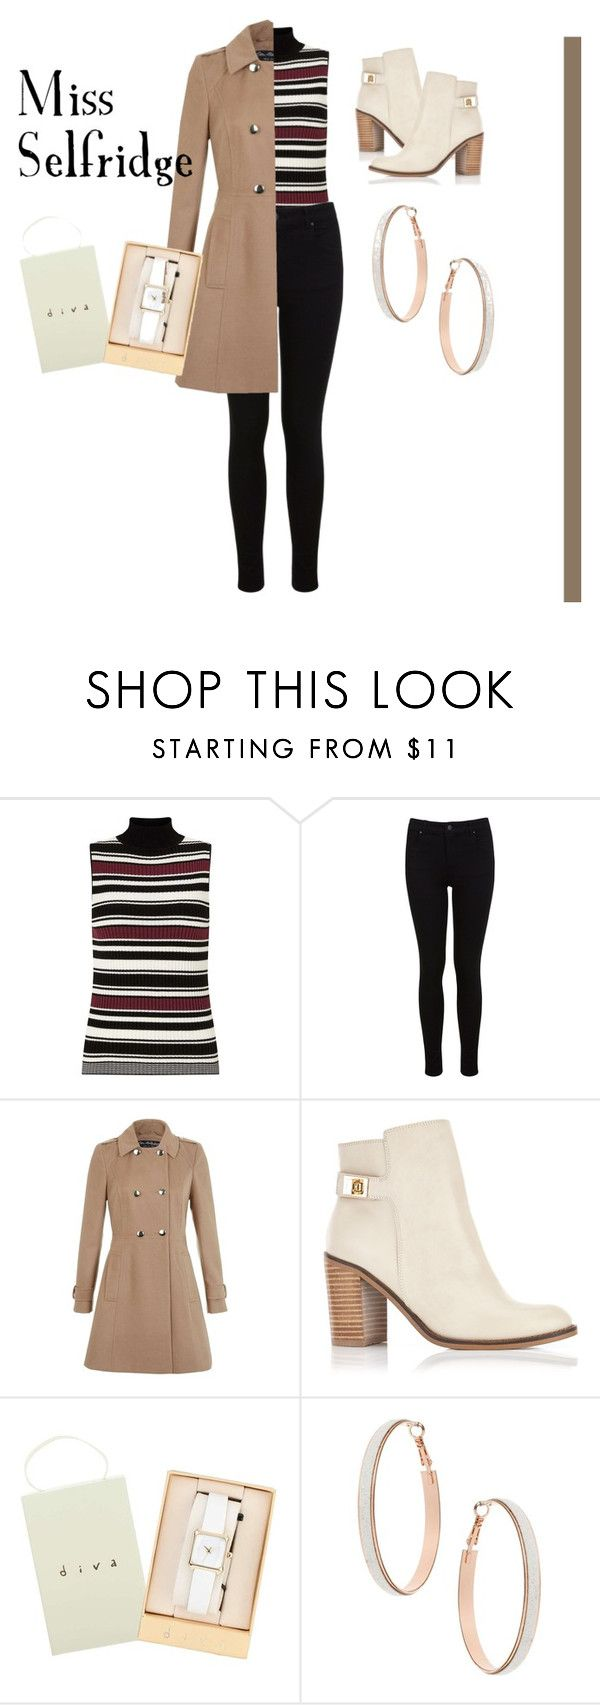 """""""Miss Selfridge"""" by eviejessup on Polyvore featuring Miss Selfridge"""